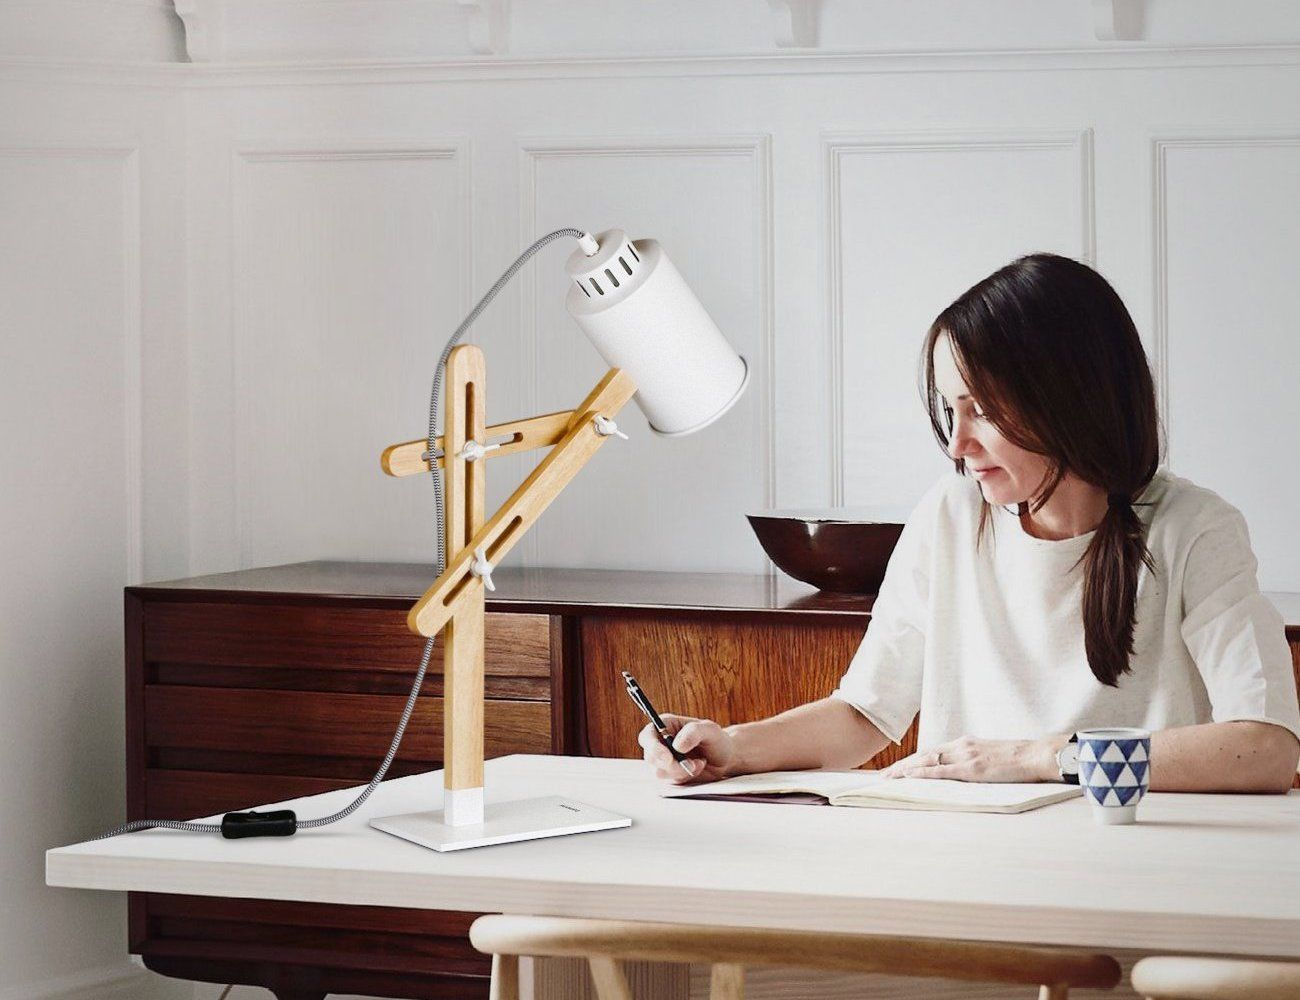 Add Some Modernity To Your Workspace With The Tomons Led Multi Angle Wood Desk Lamp It Has A Delightfully Scandinavian Wood Desk Lamp Desk Lamp Led Desk Lamp